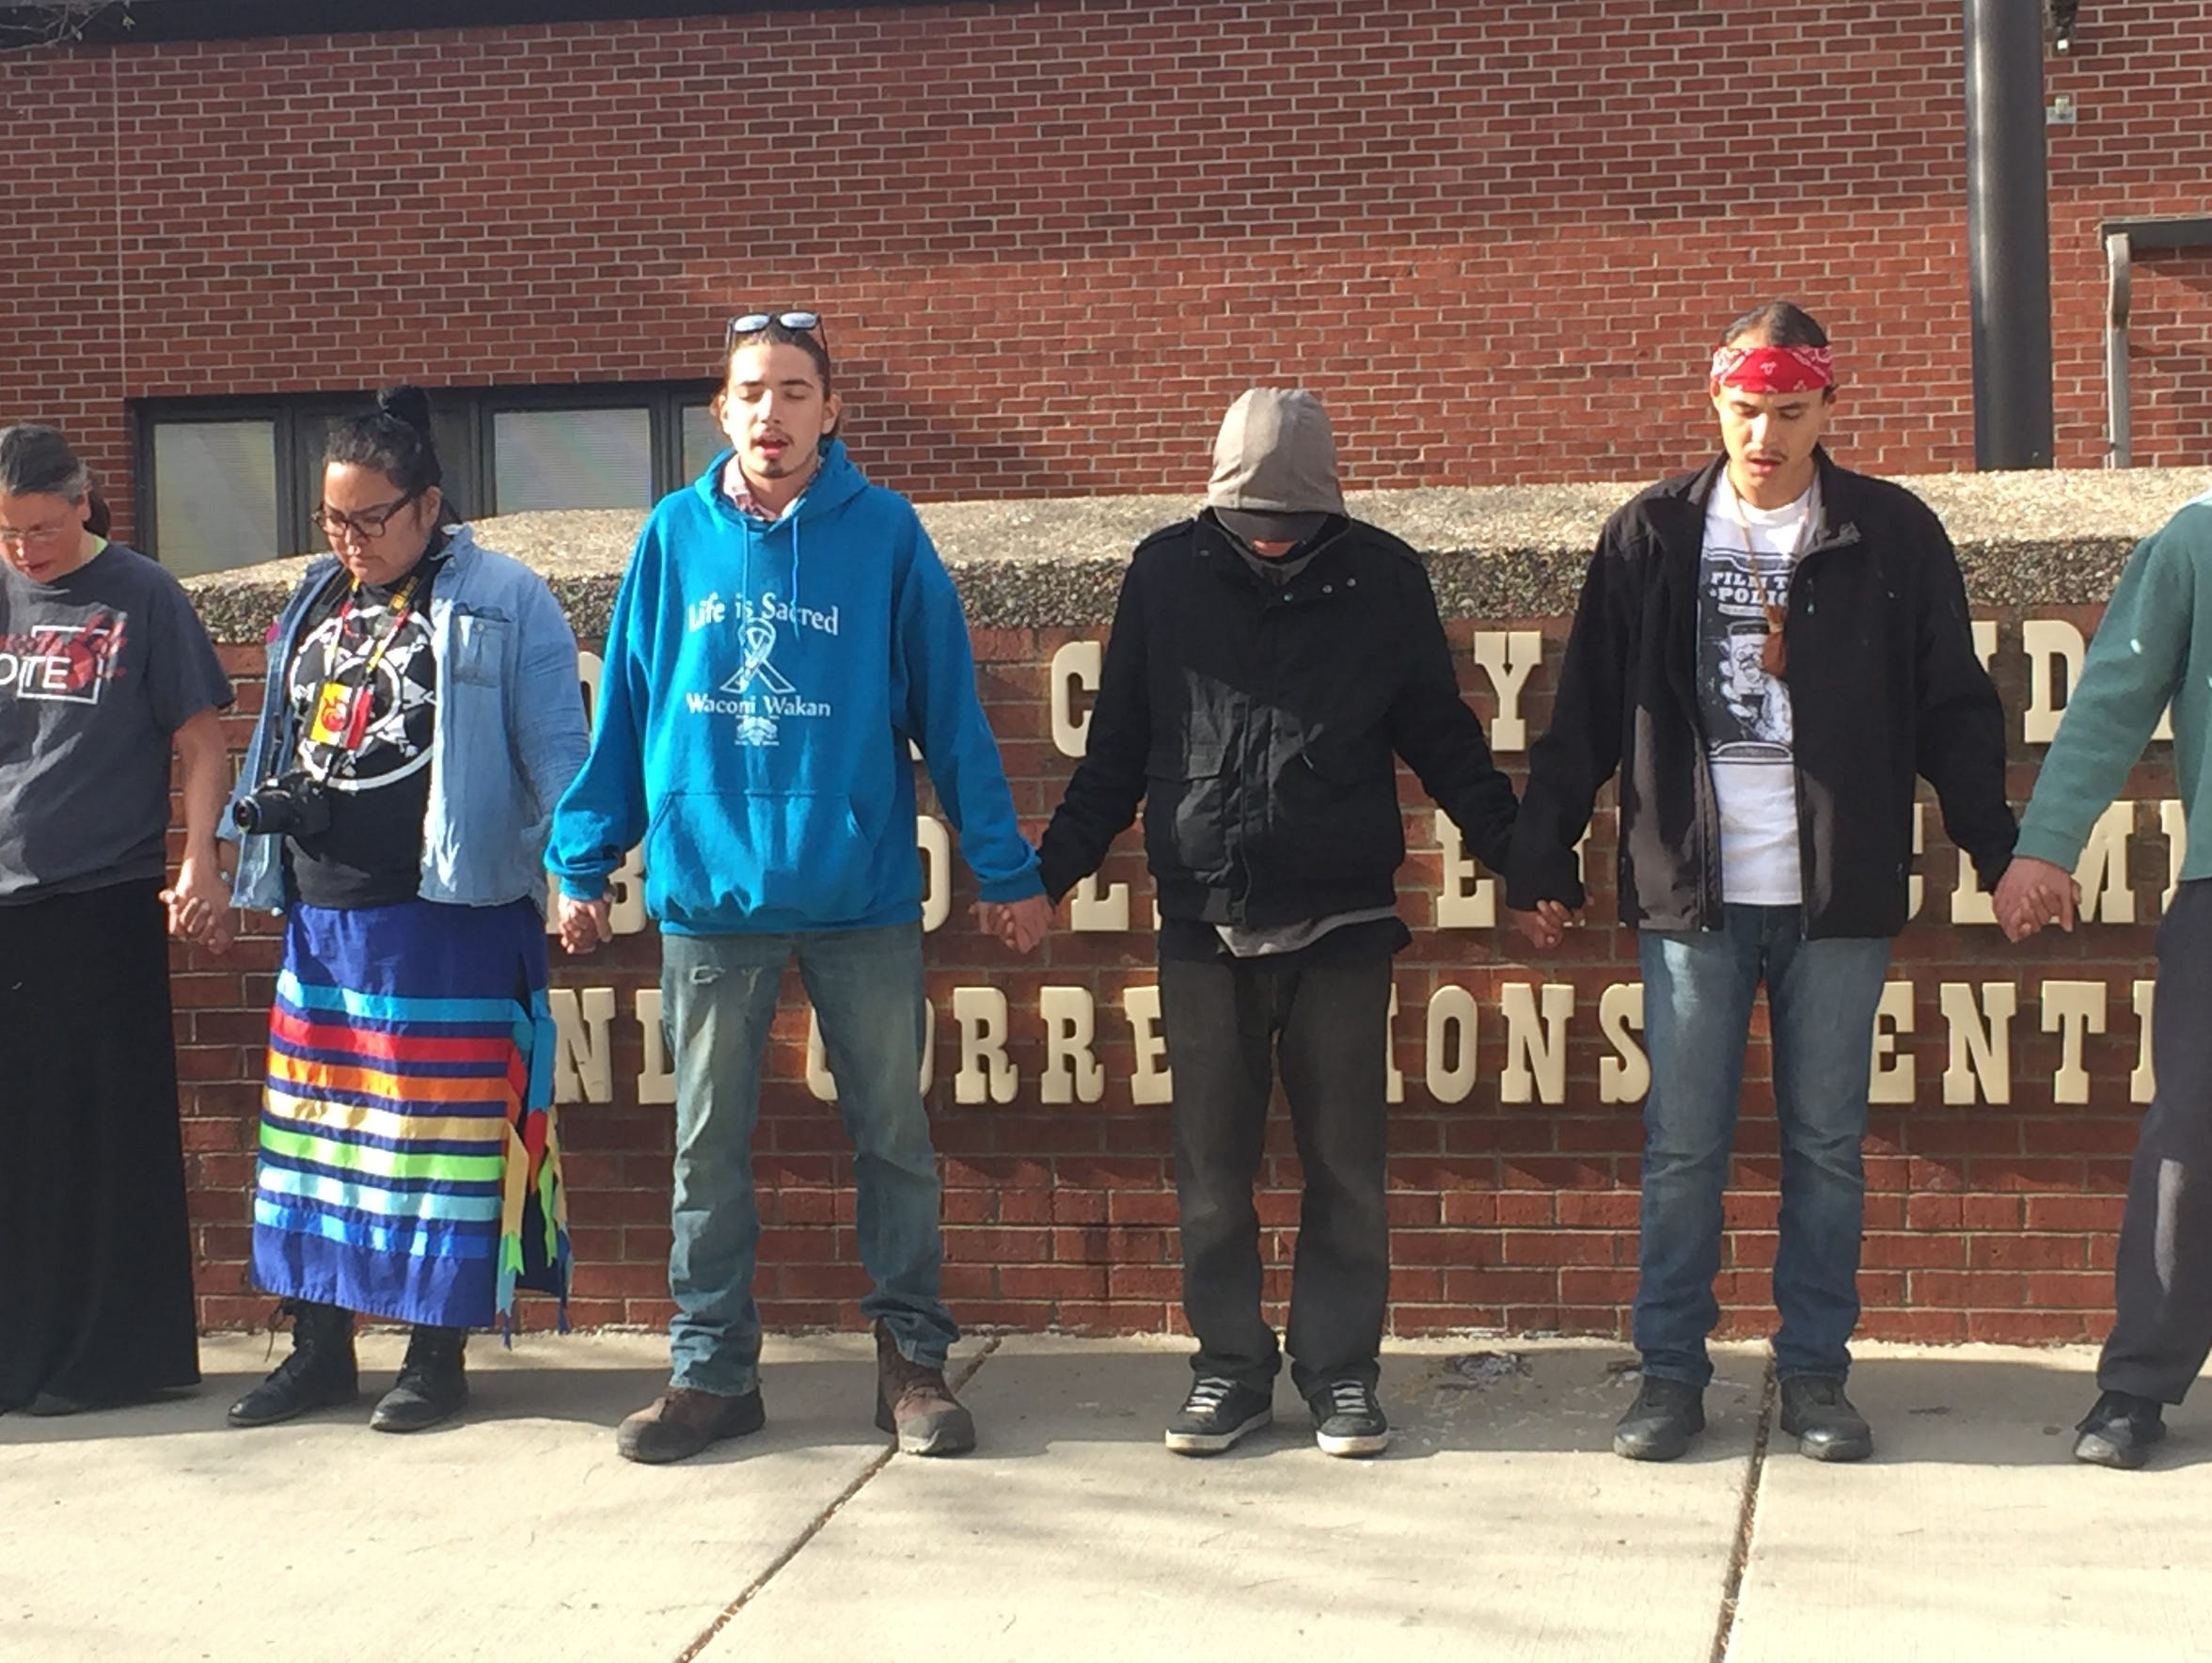 On Sunday, water protectors circled the Morton County